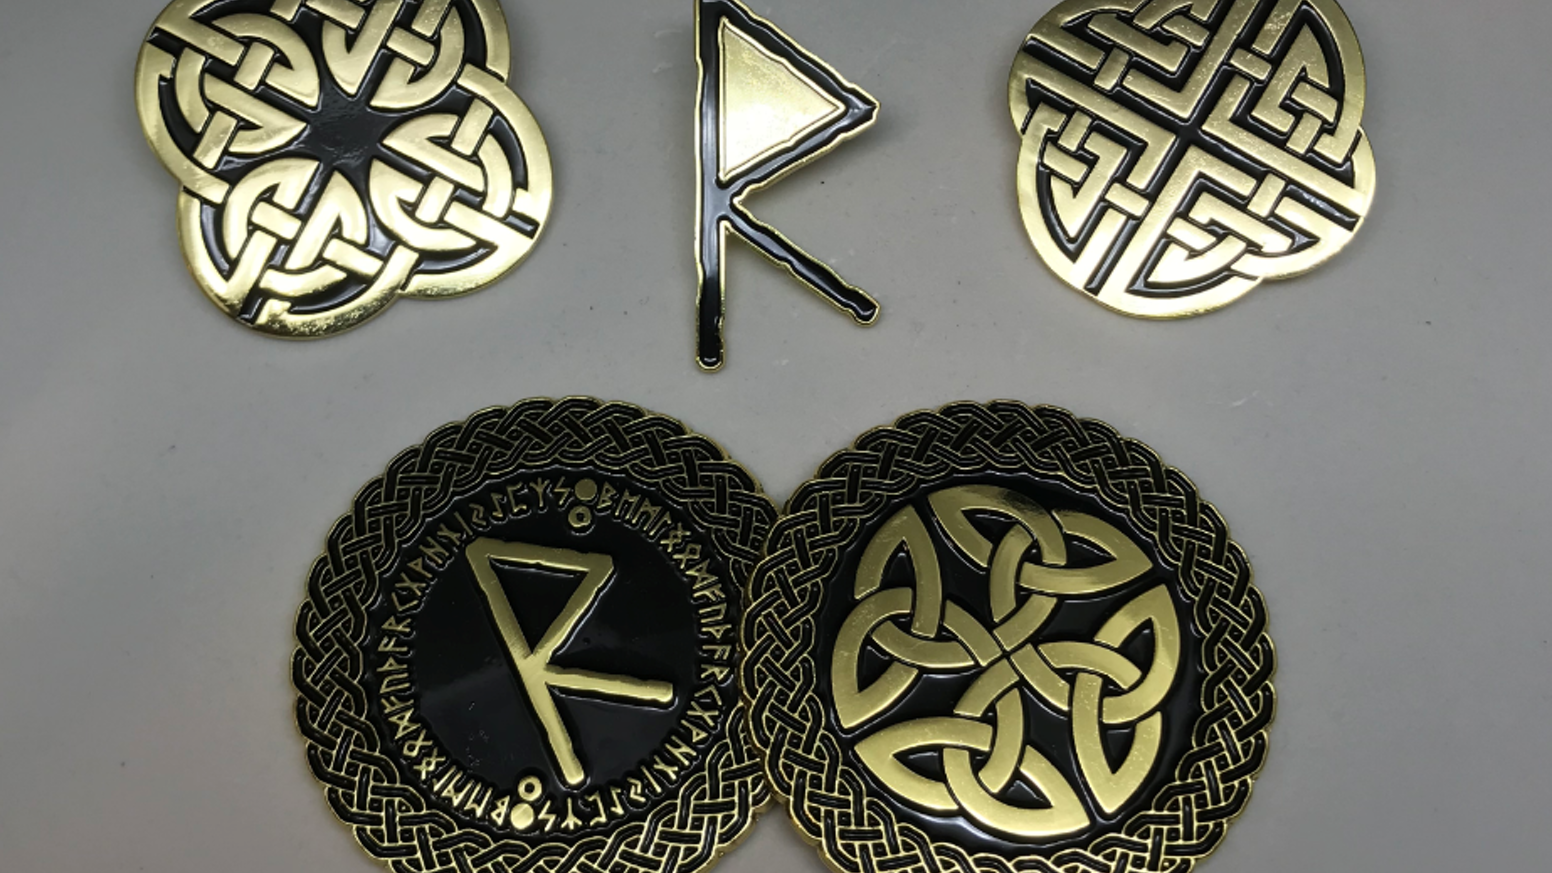 Enamel Pins and Coins with Celtic Knot and Norse Rune designs.